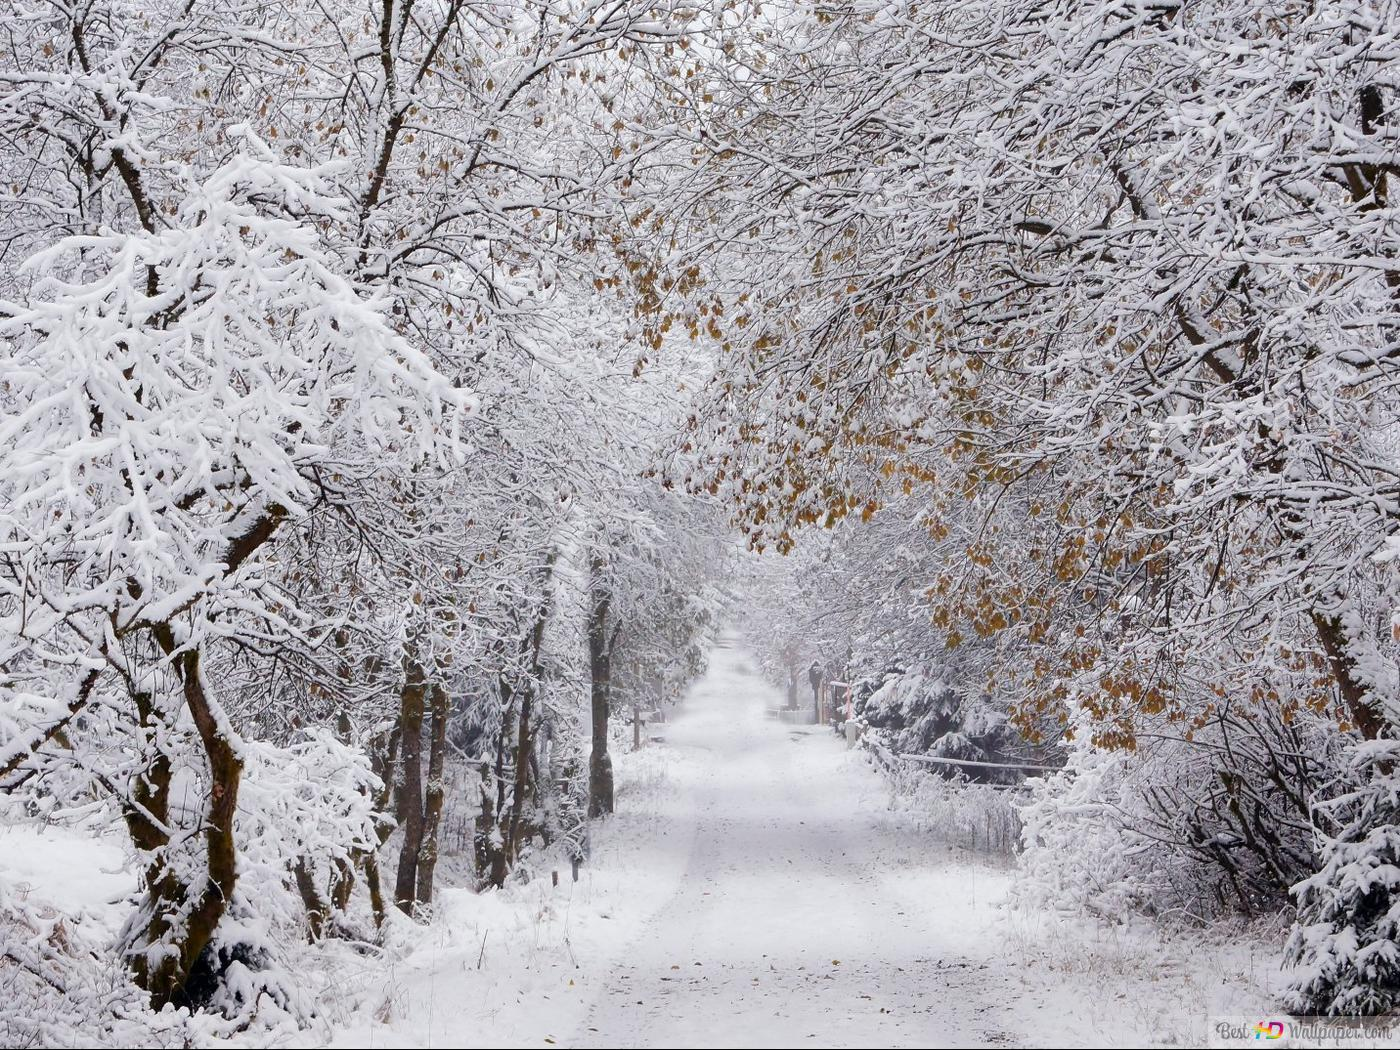 Snowy Road In Winter Hd Wallpaper Download